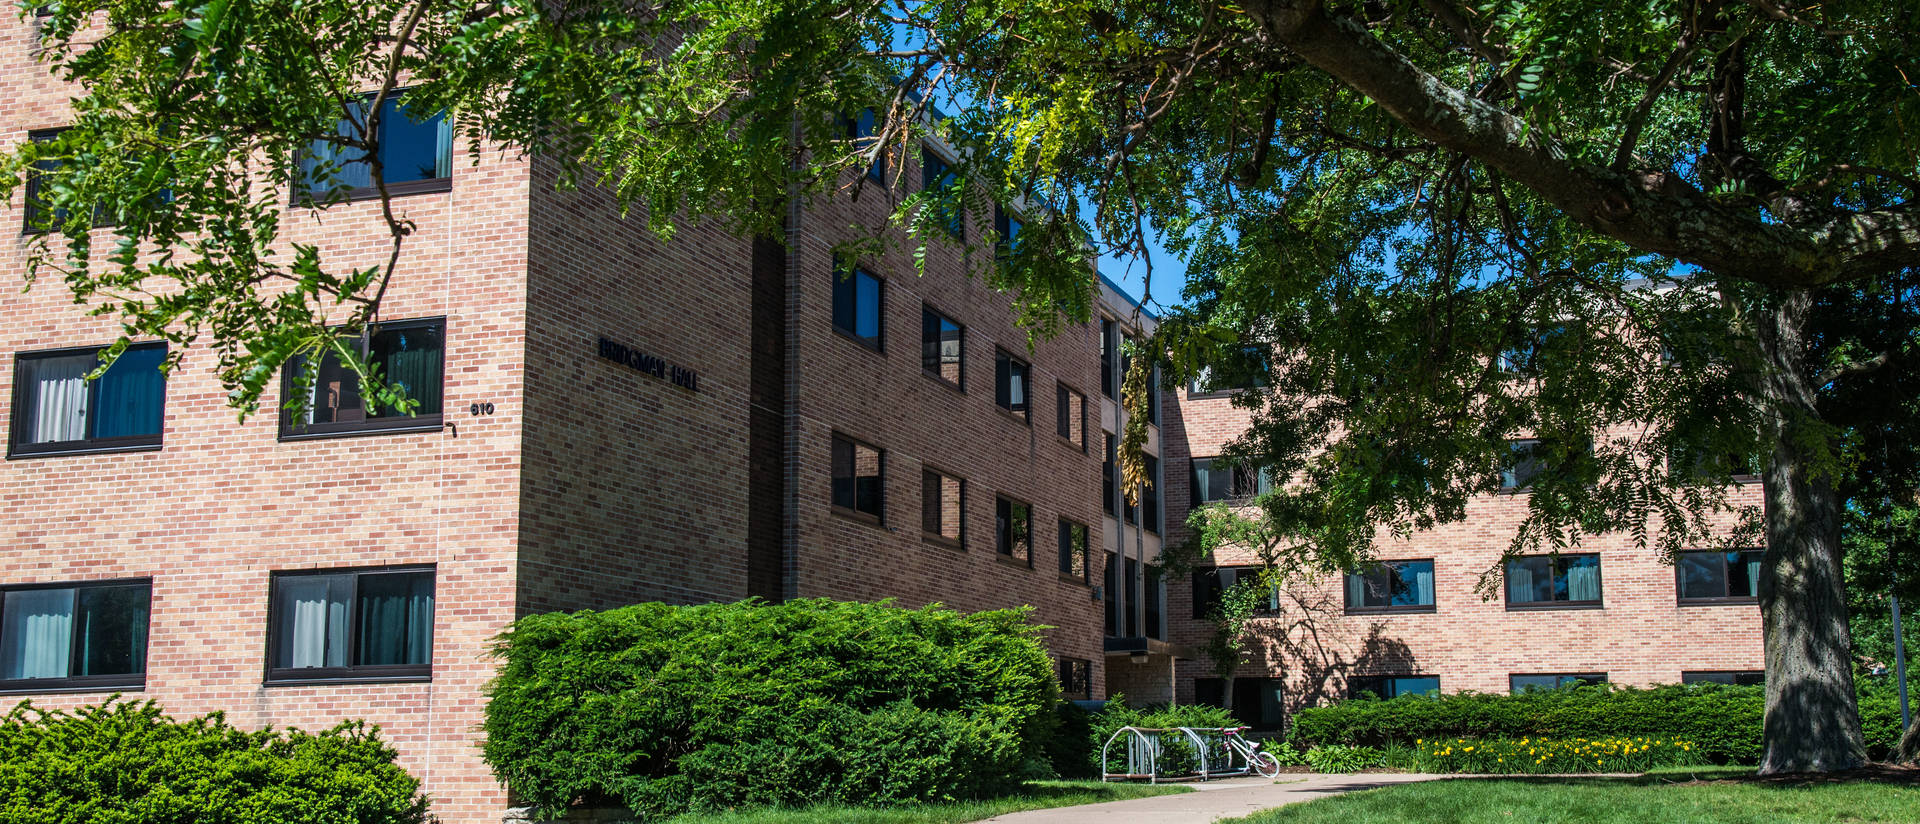 Exterior image of Bridgman Hall including walkway